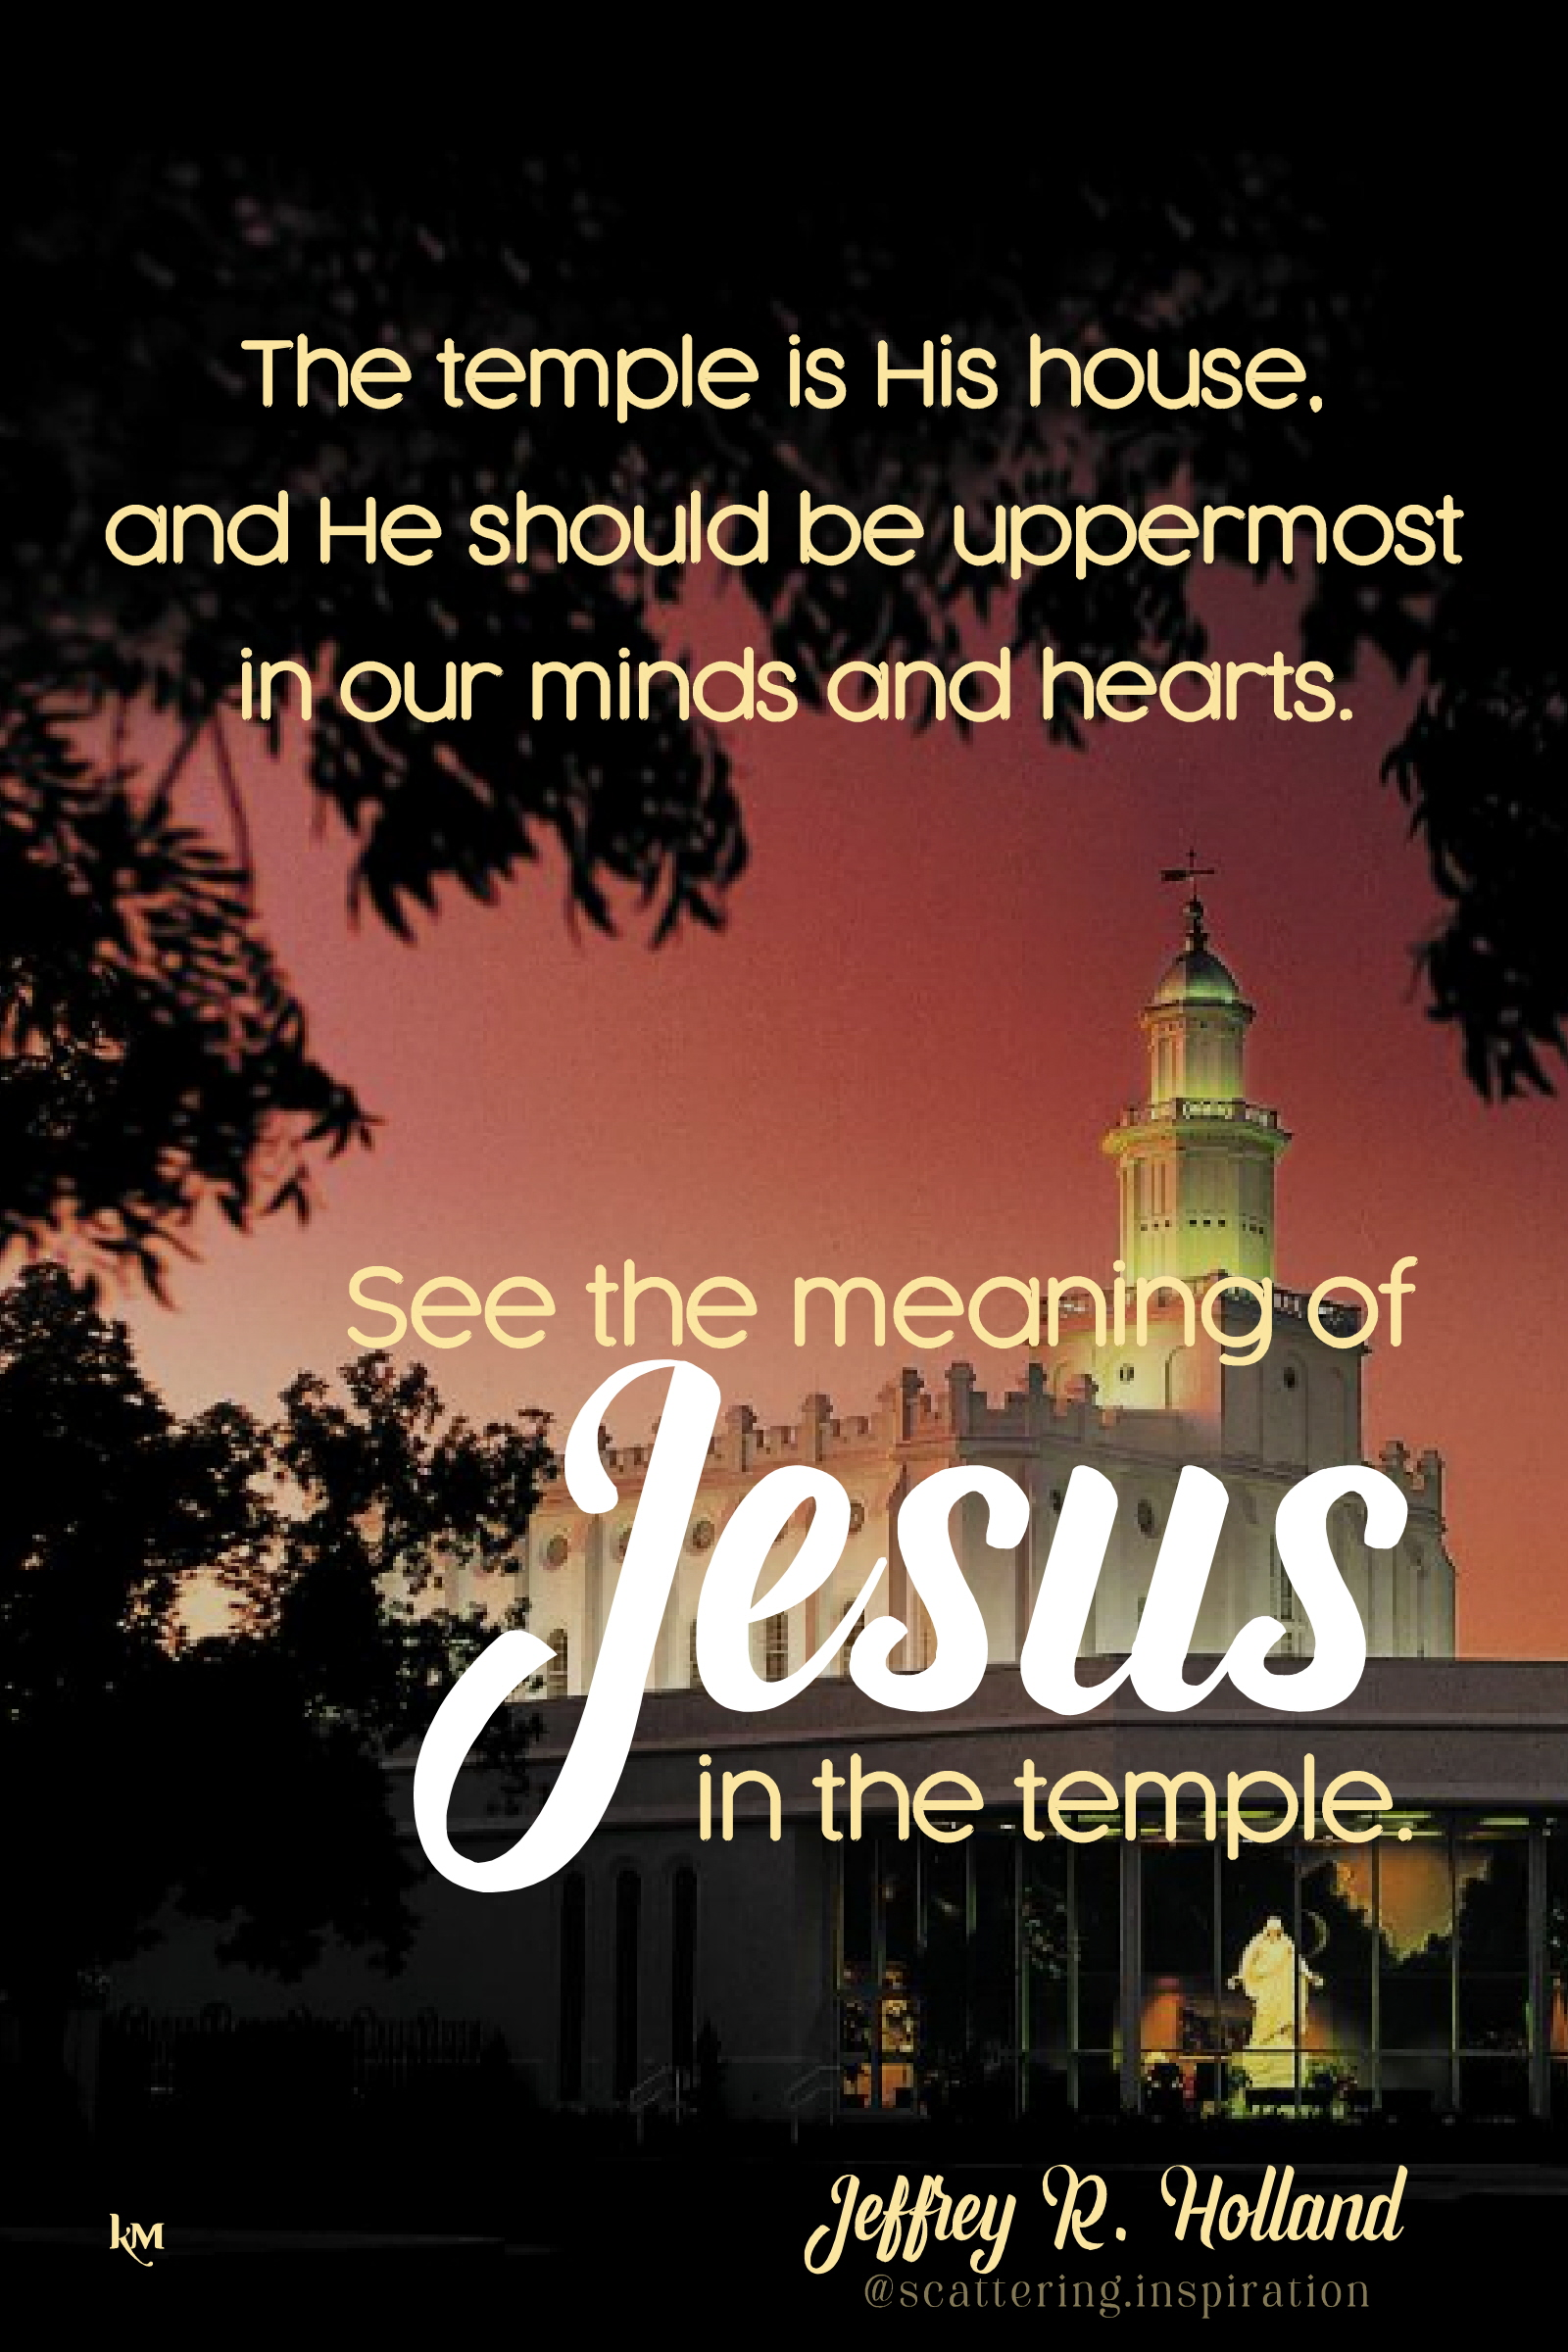 the temple is His house